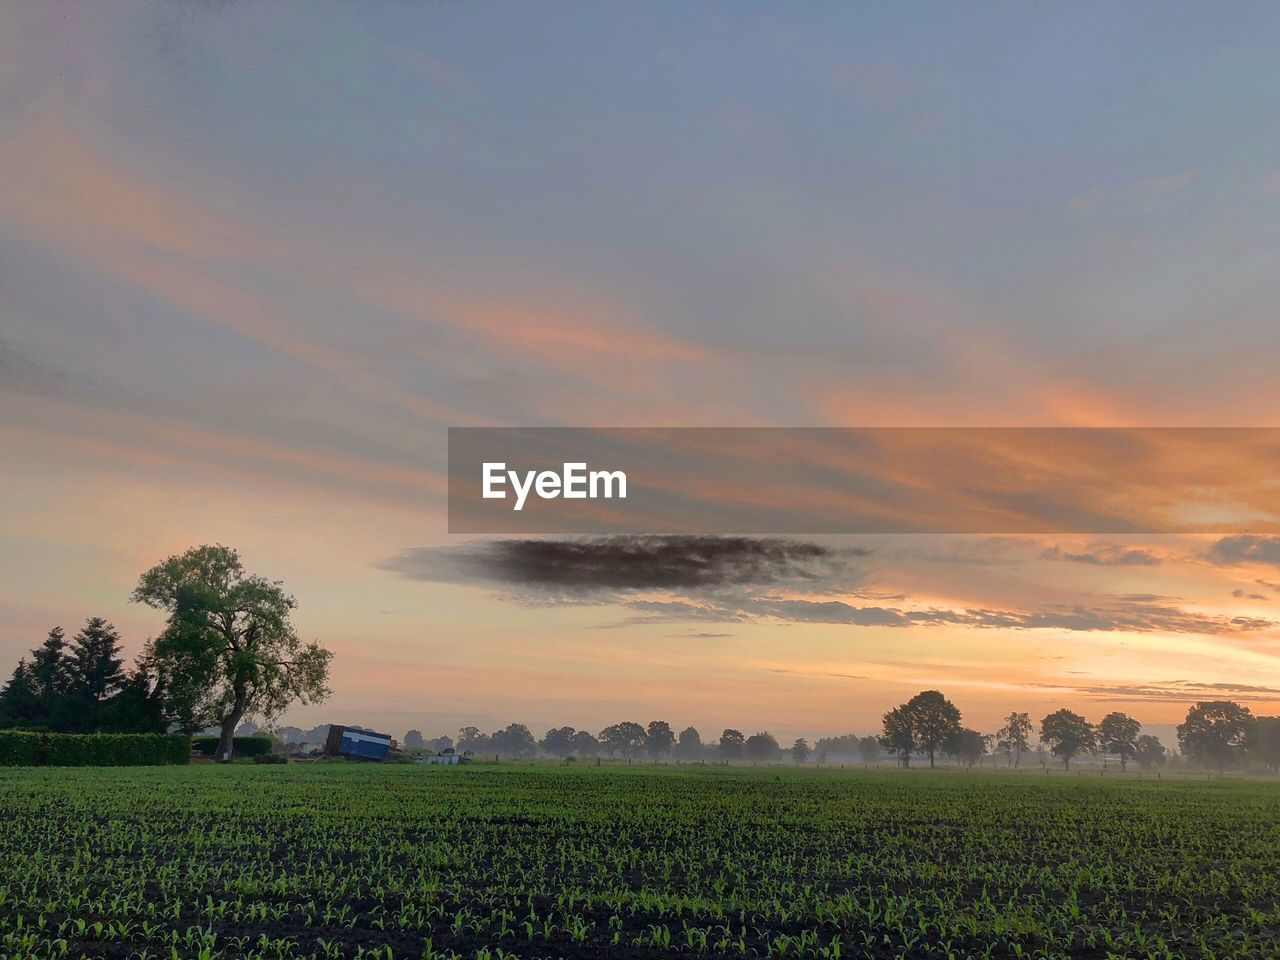 sky, beauty in nature, scenics - nature, field, landscape, sunset, agriculture, tranquil scene, plant, rural scene, tranquility, environment, growth, farm, land, cloud - sky, orange color, tree, nature, crop, no people, outdoors, plantation, gardening, planting